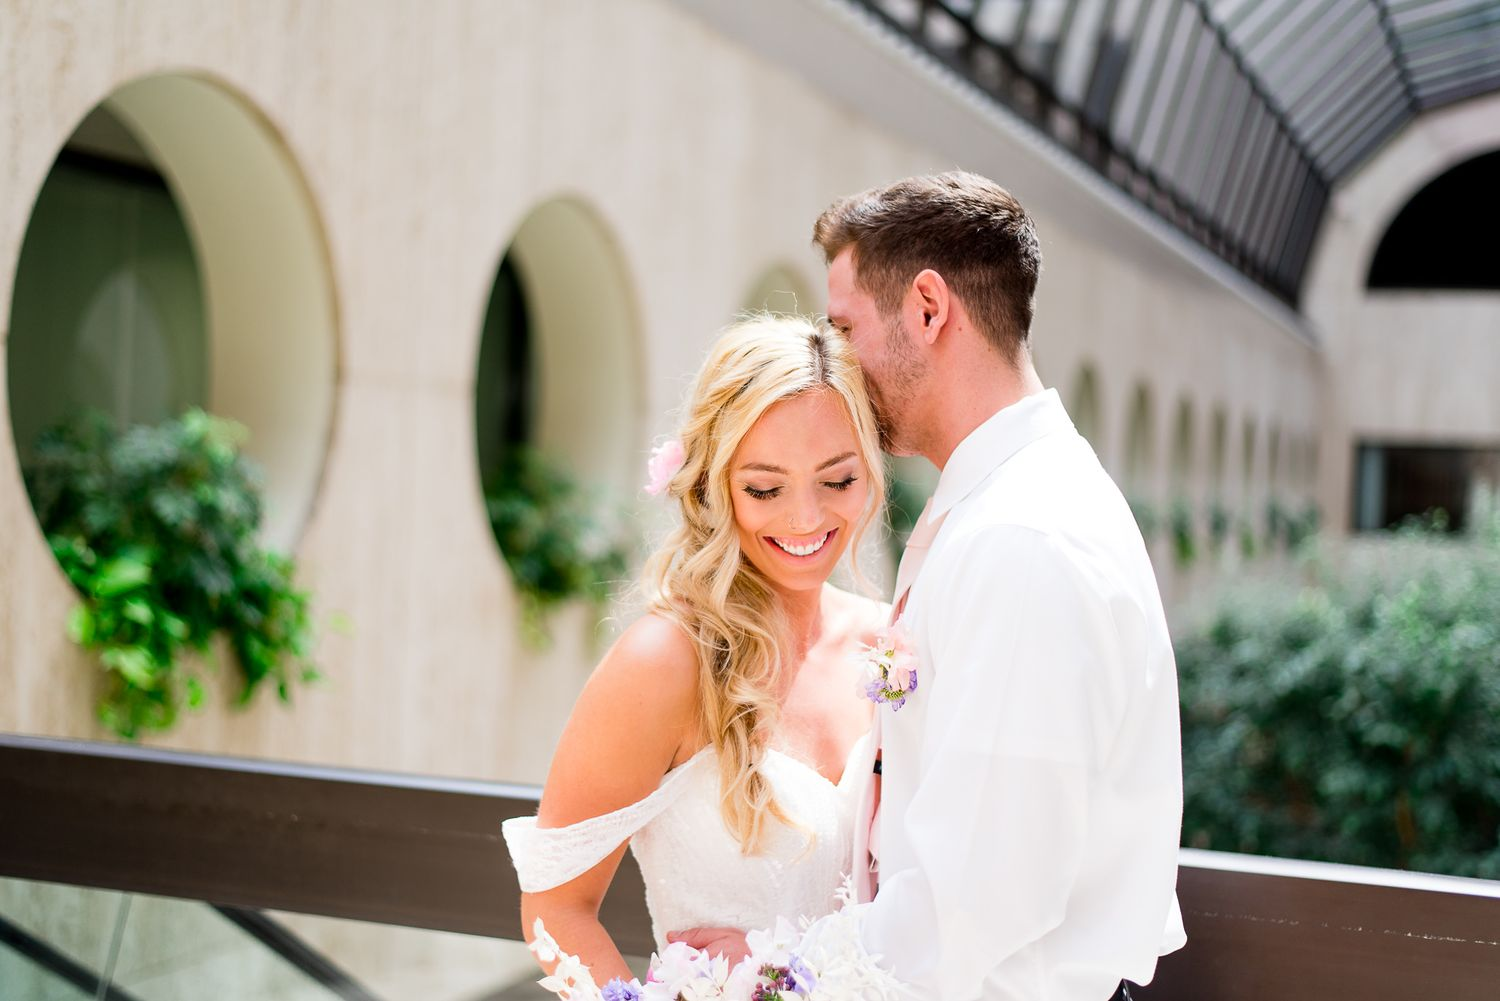 blonde bride smiling and laughing while groom whispers to her at The Center Cincinnati